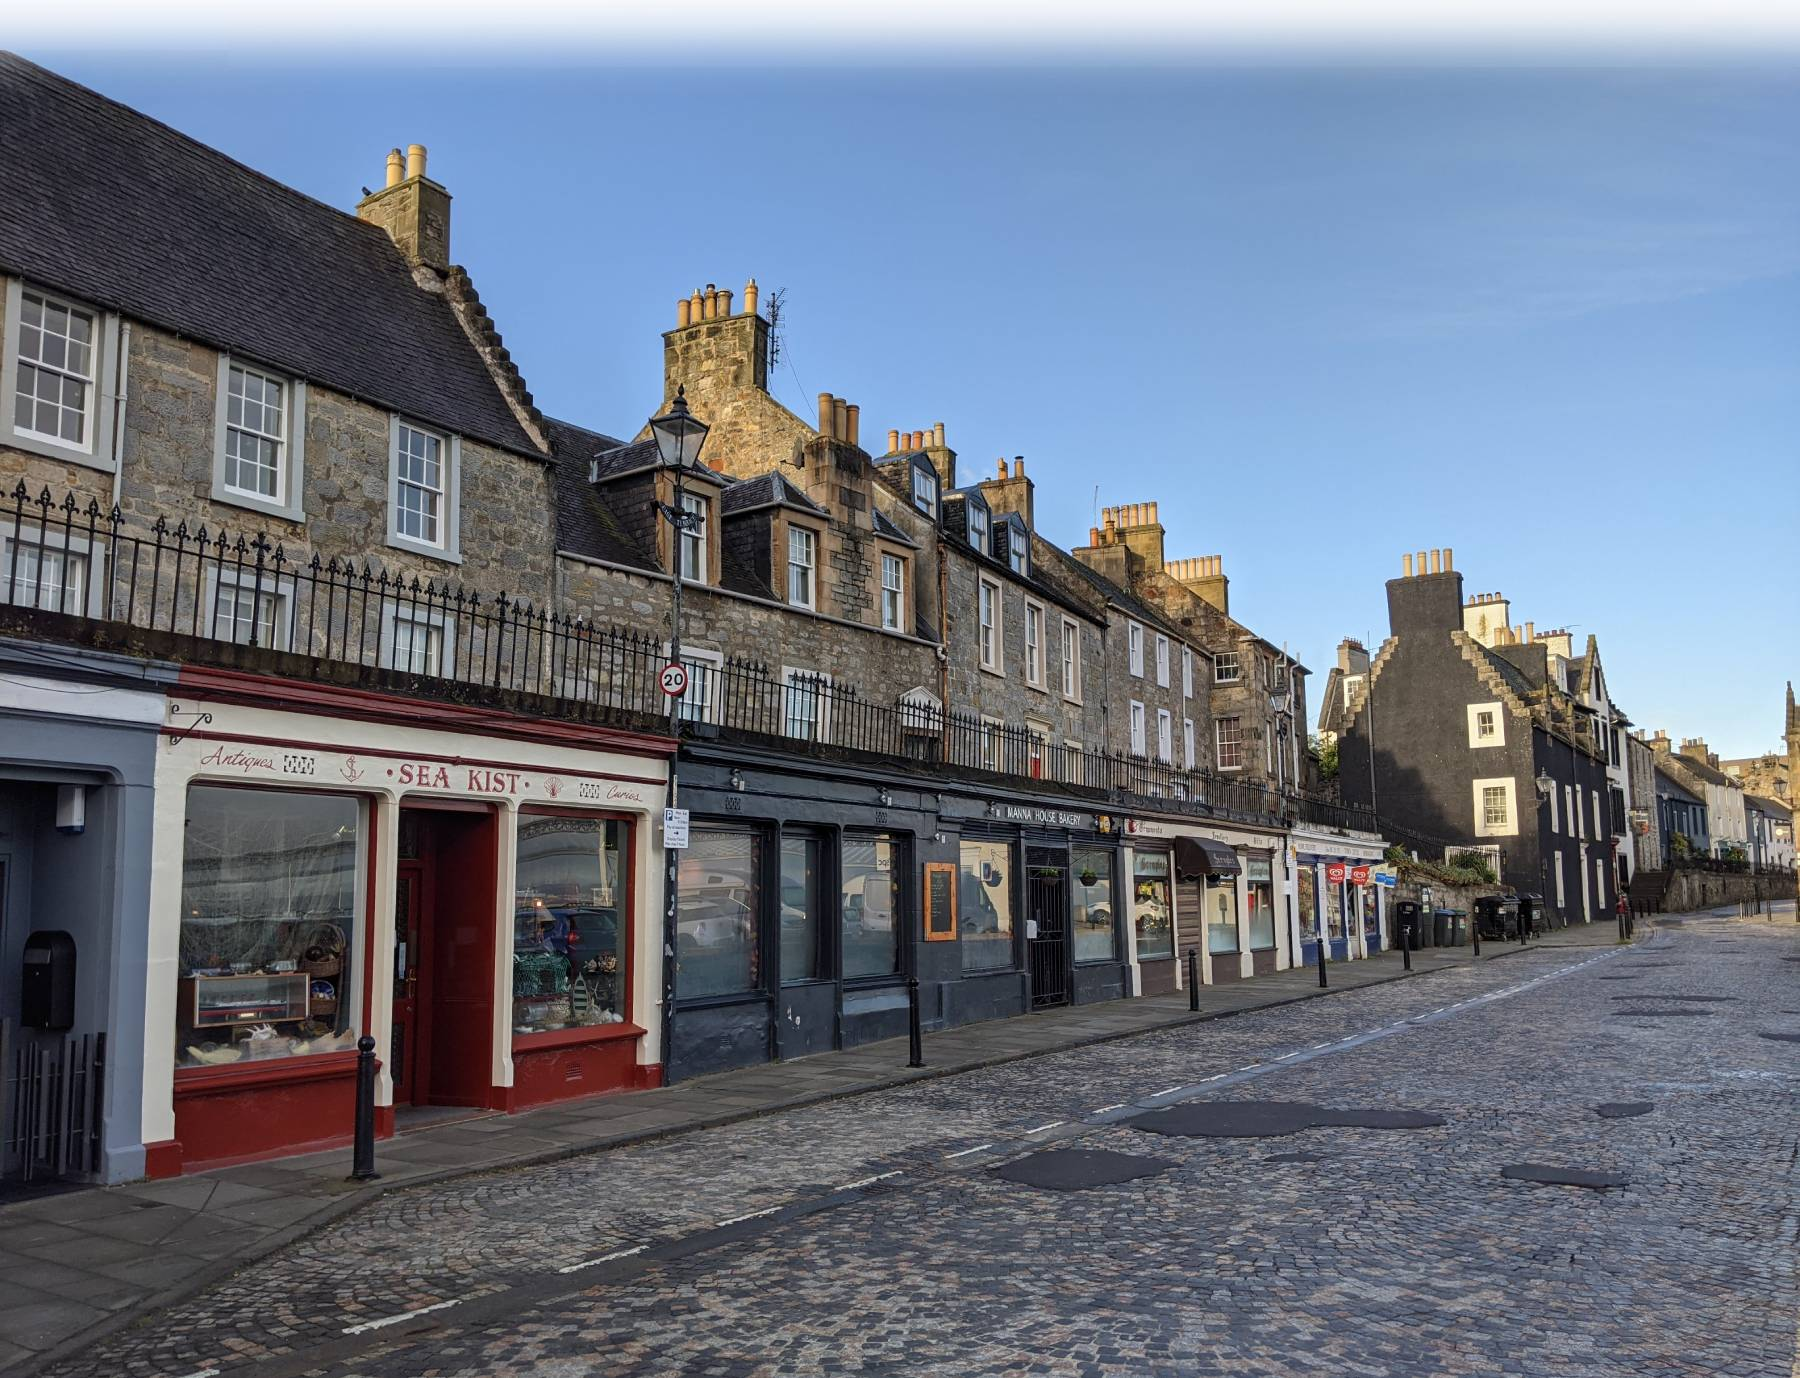 Sea Kist and its neighbouring premises in Queensferry High Street.